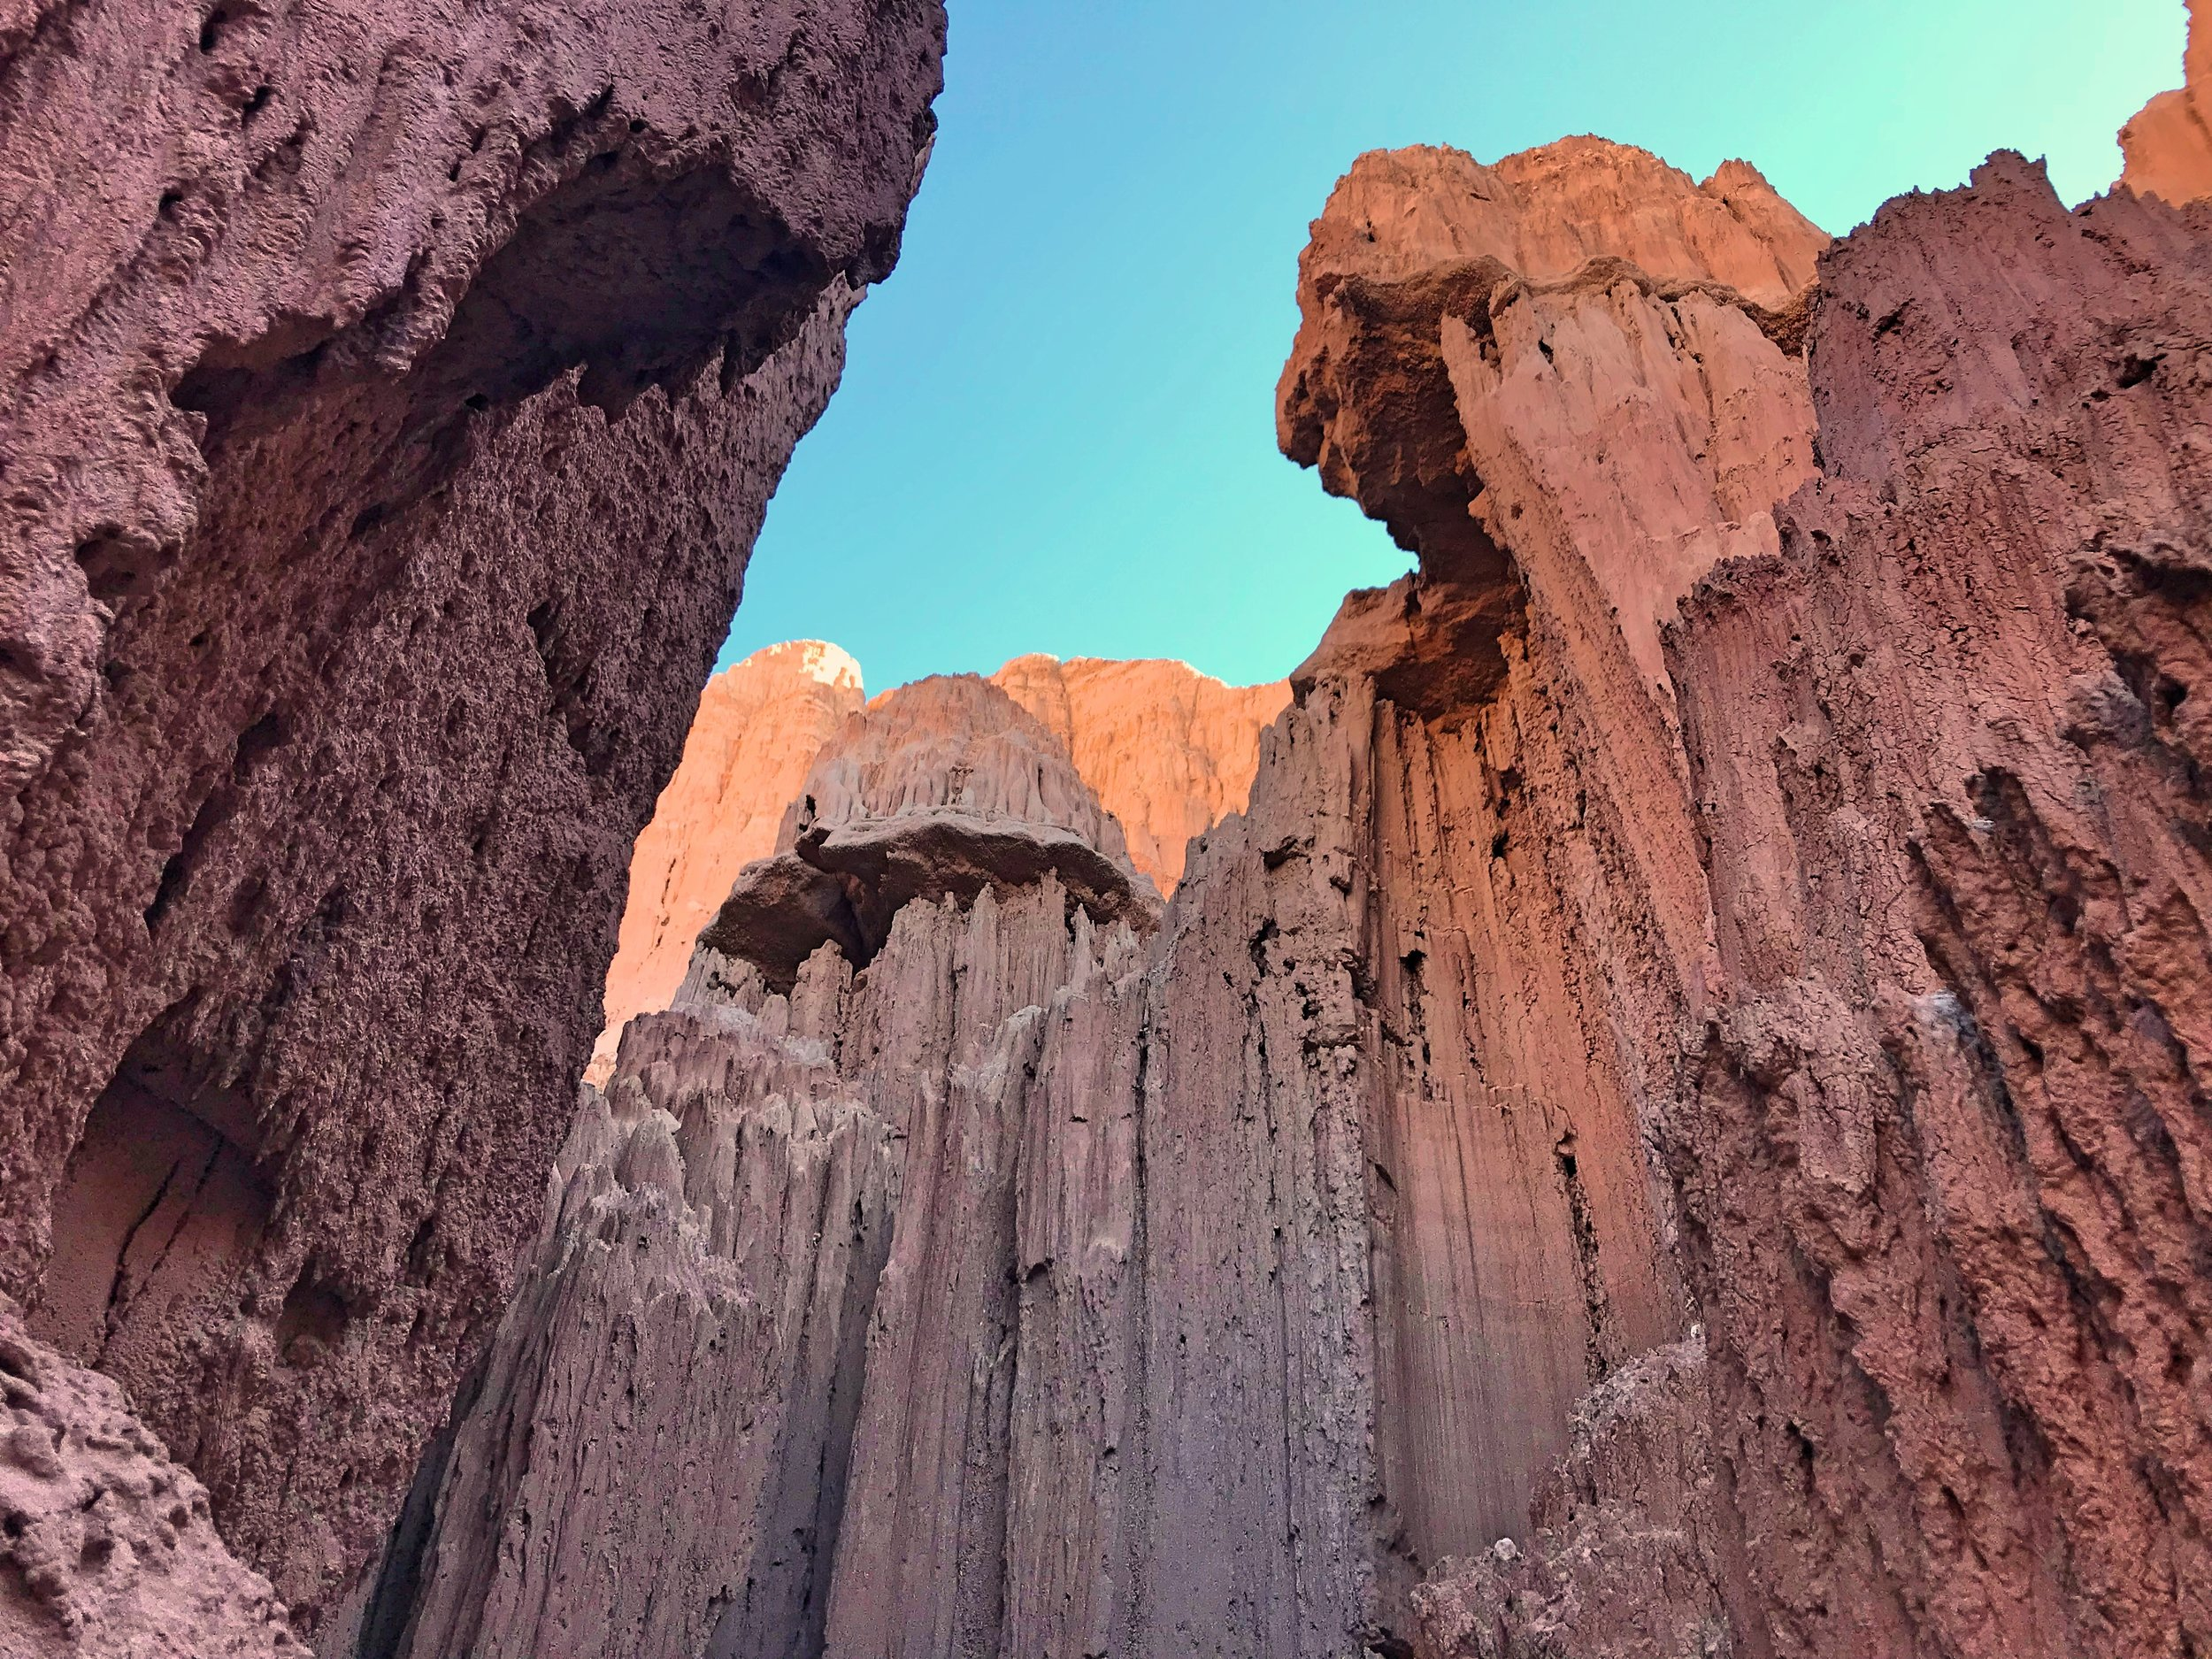 The walls of the gorge are full of interesting layers and formations.